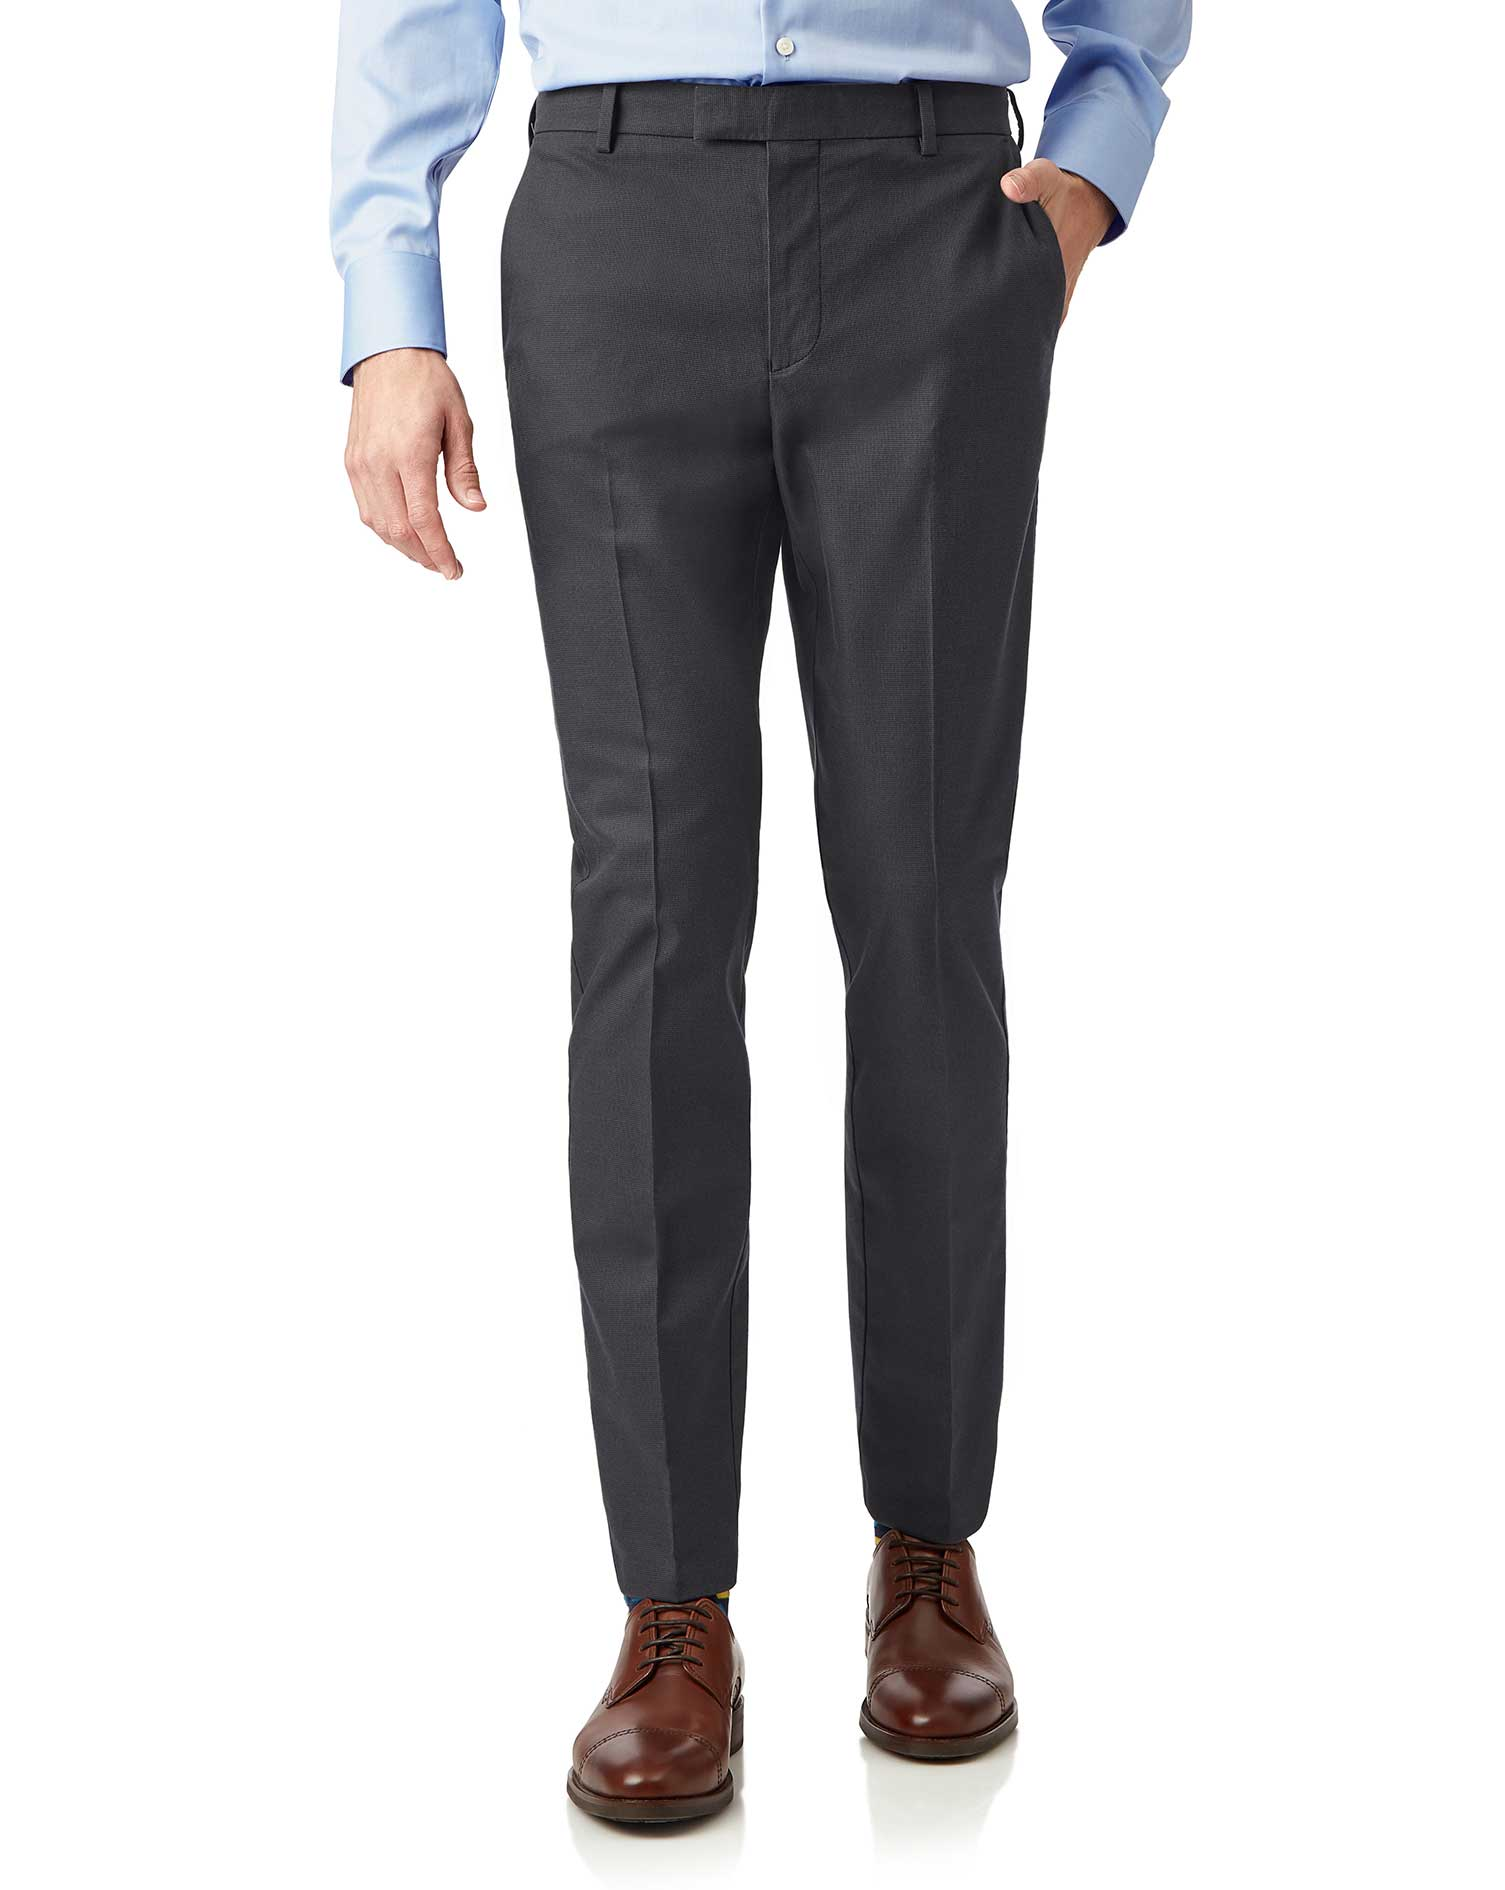 Cotton Charcoal Non-Iron Stretch Textured Trousers